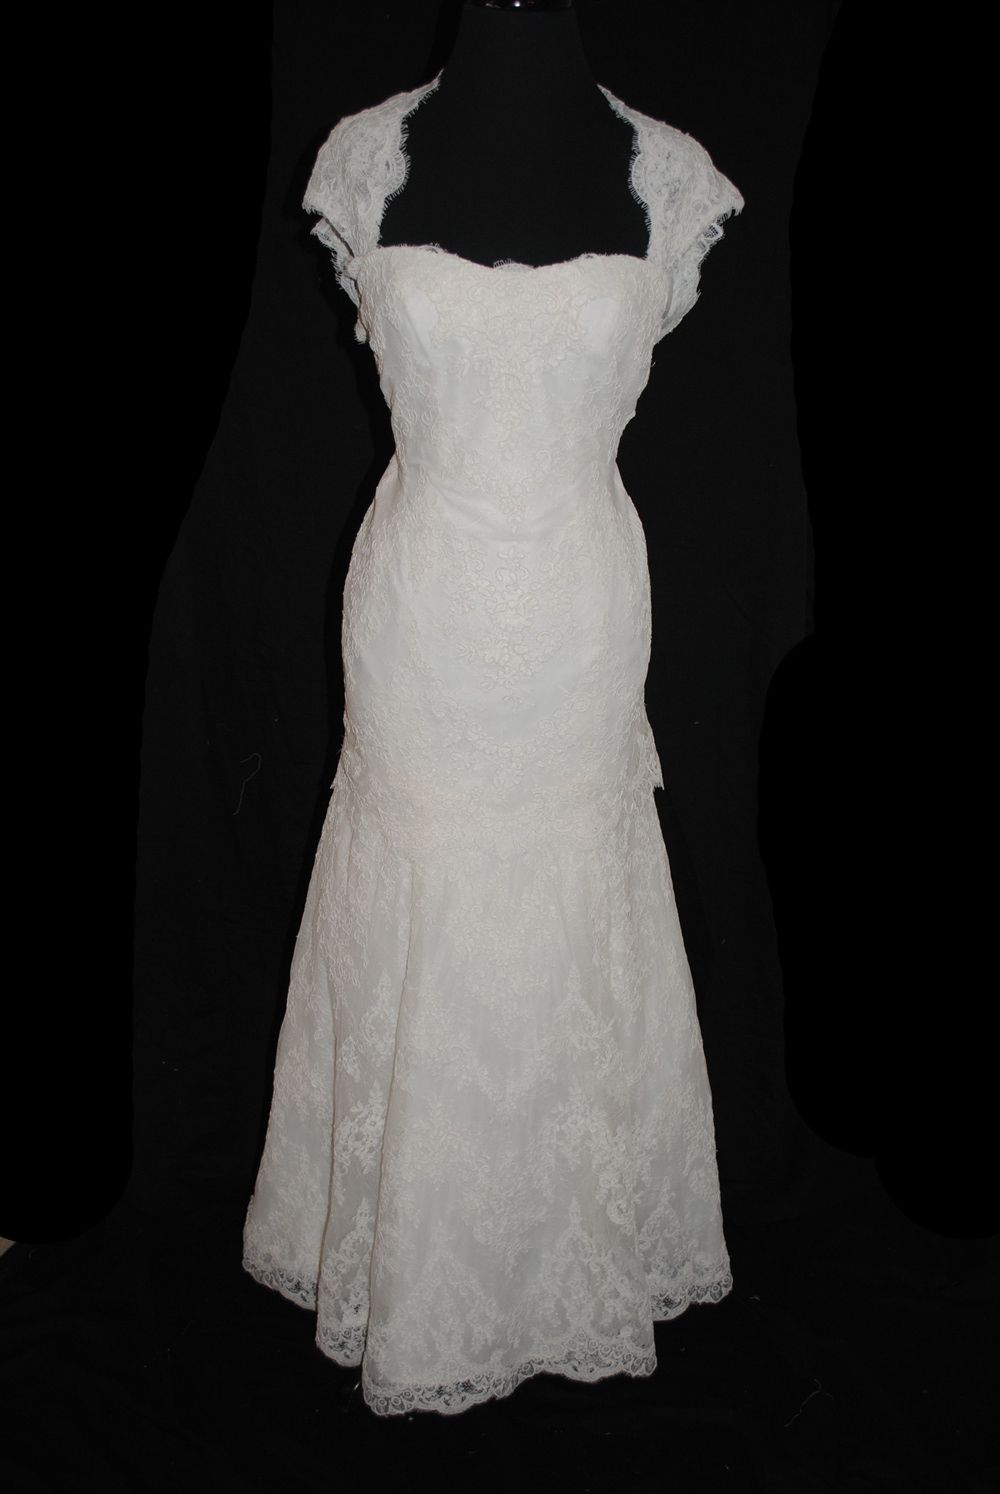 Cat in wedding dress  Love the cut lace and keyhole back idea so classy and elegant